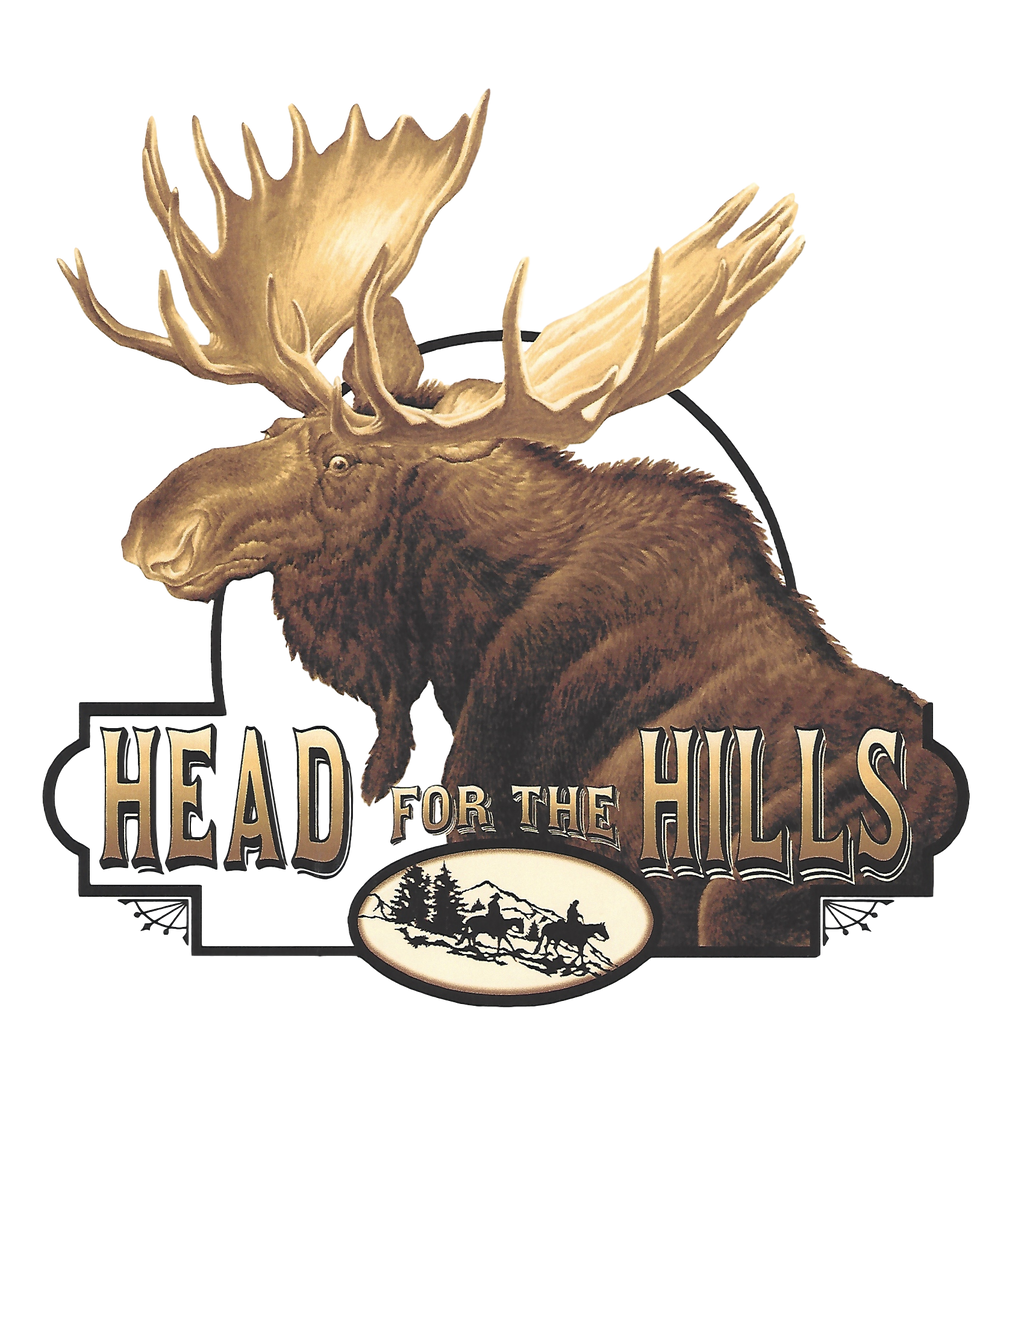 Classic Rock Head for the Hills Moose